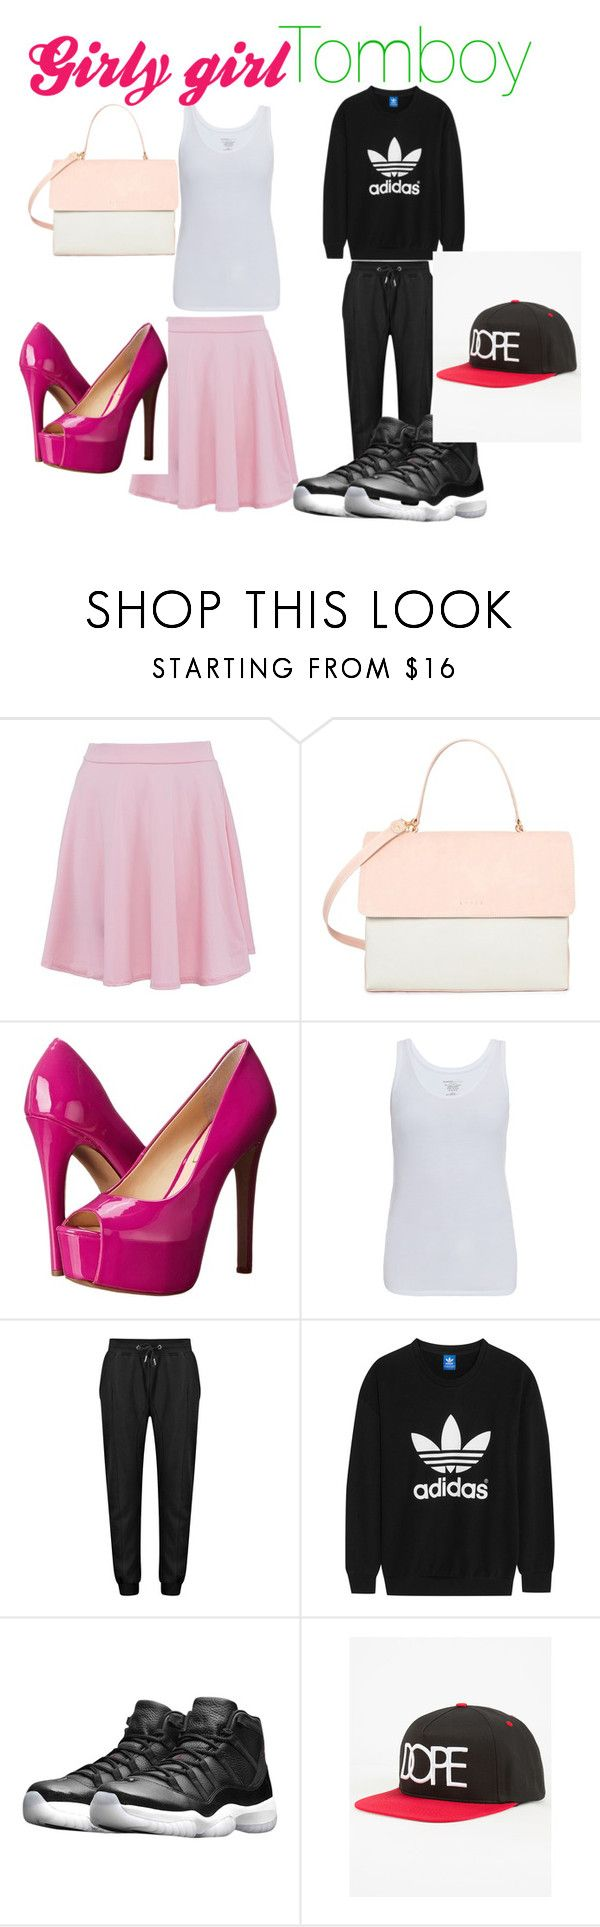 """""""Girly girl and  Tomboy"""" by myadoughty46 ❤ liked on Polyvore featuring Eddie, Jessica Simpson, Majestic, adidas Originals, NIKE, Dope, white, Pink, girly and girl"""